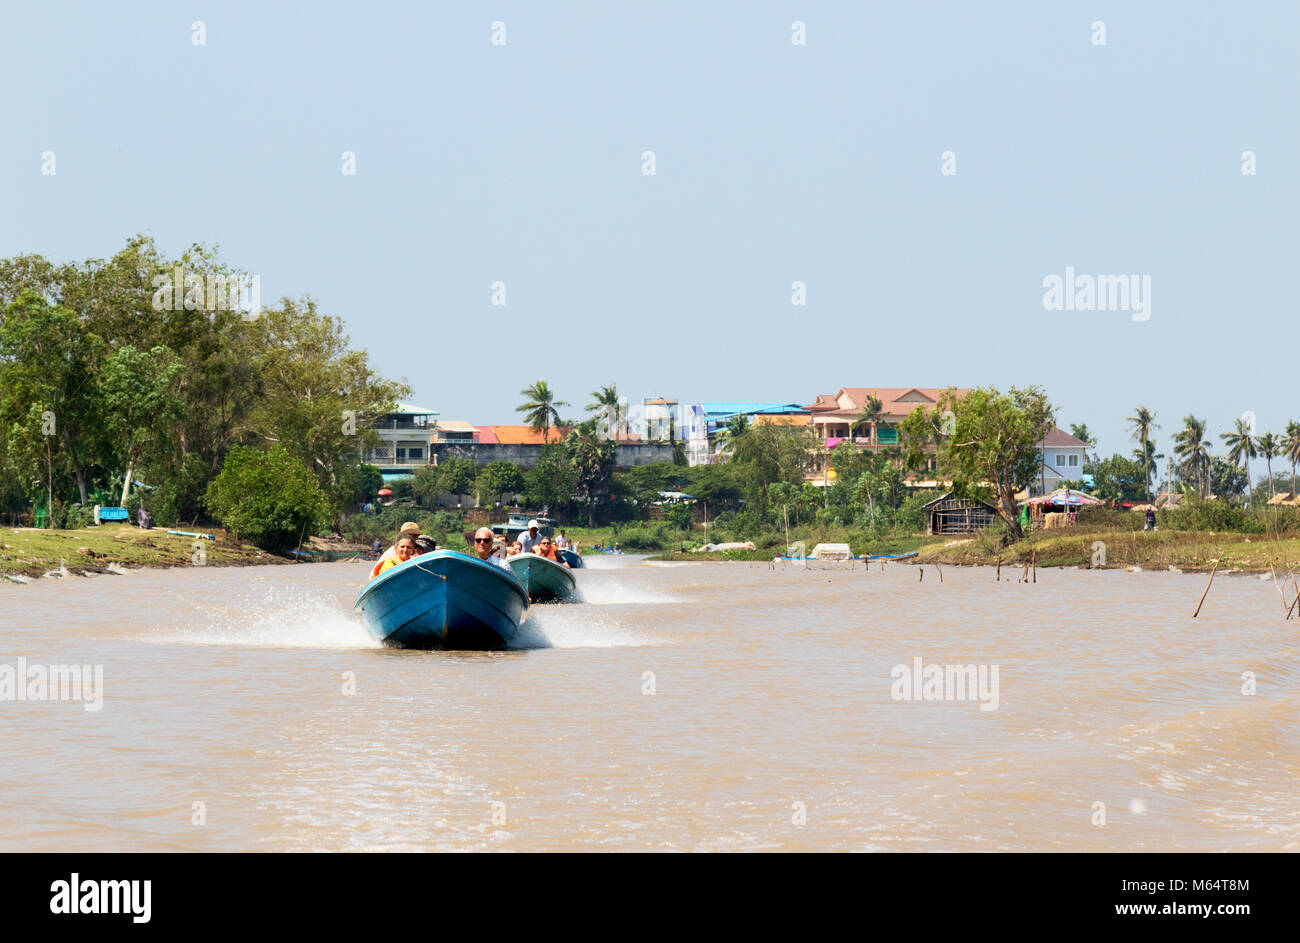 Tourists on a boat trip on the canals in southern Cambodia, Cambodia, Asia - Stock Image